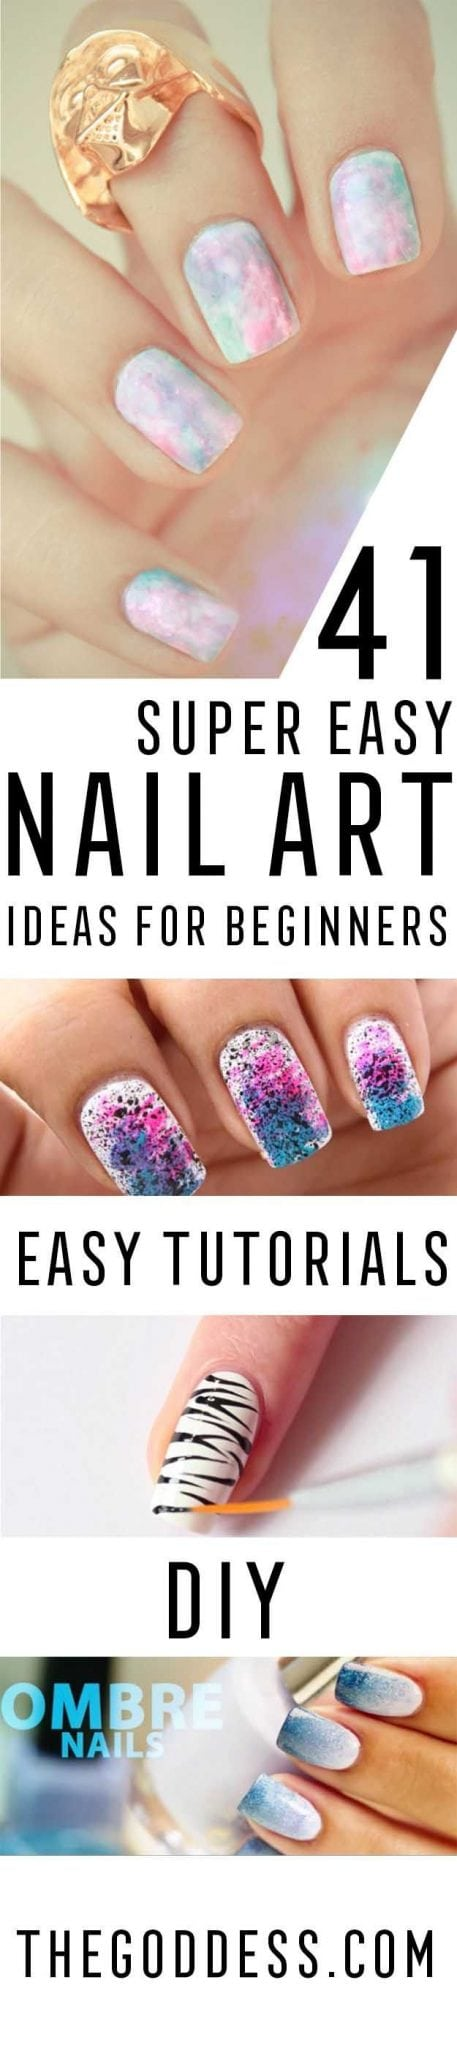 Super Easy Nail Art Ideas for Beginners – Simple Step By Step DIY Tutorials And Pictures For Nailart.  Ideas For Every Style, All Hair Colors, Sparkle, Valentines, And other Awesome Products To Make It DIY and Super Easy -…